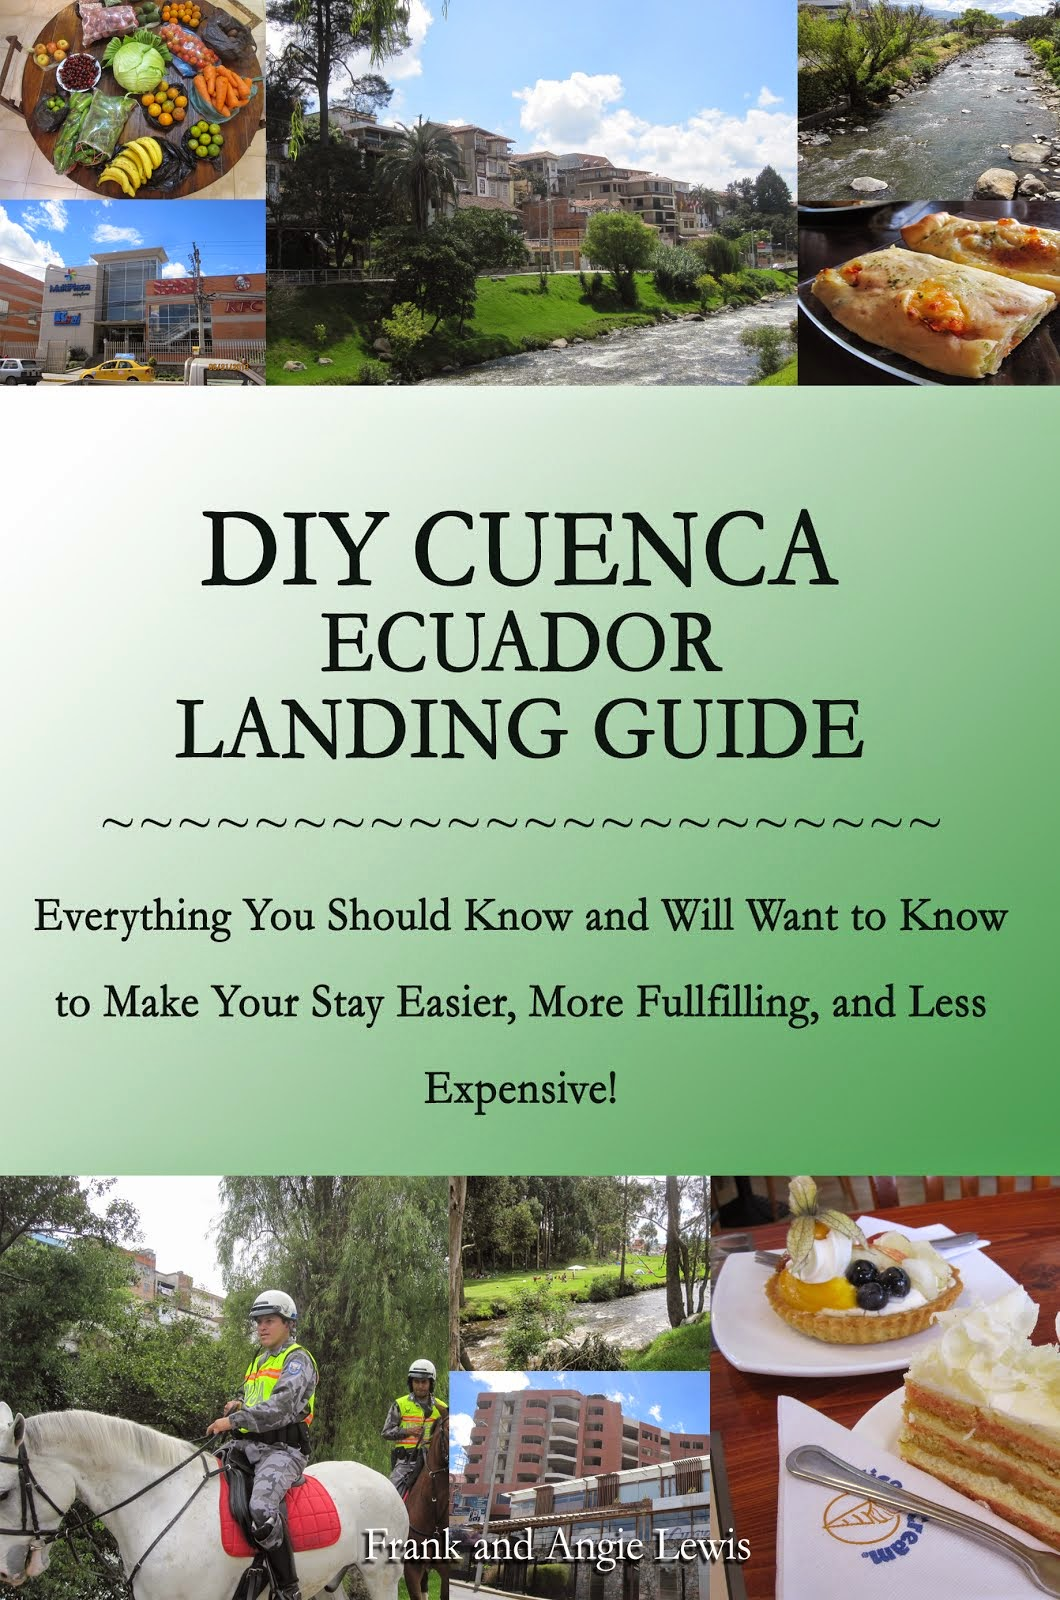 The Guide Book Will Make Your Move to Cuenca GREAT! Available in Paperback or eBook!